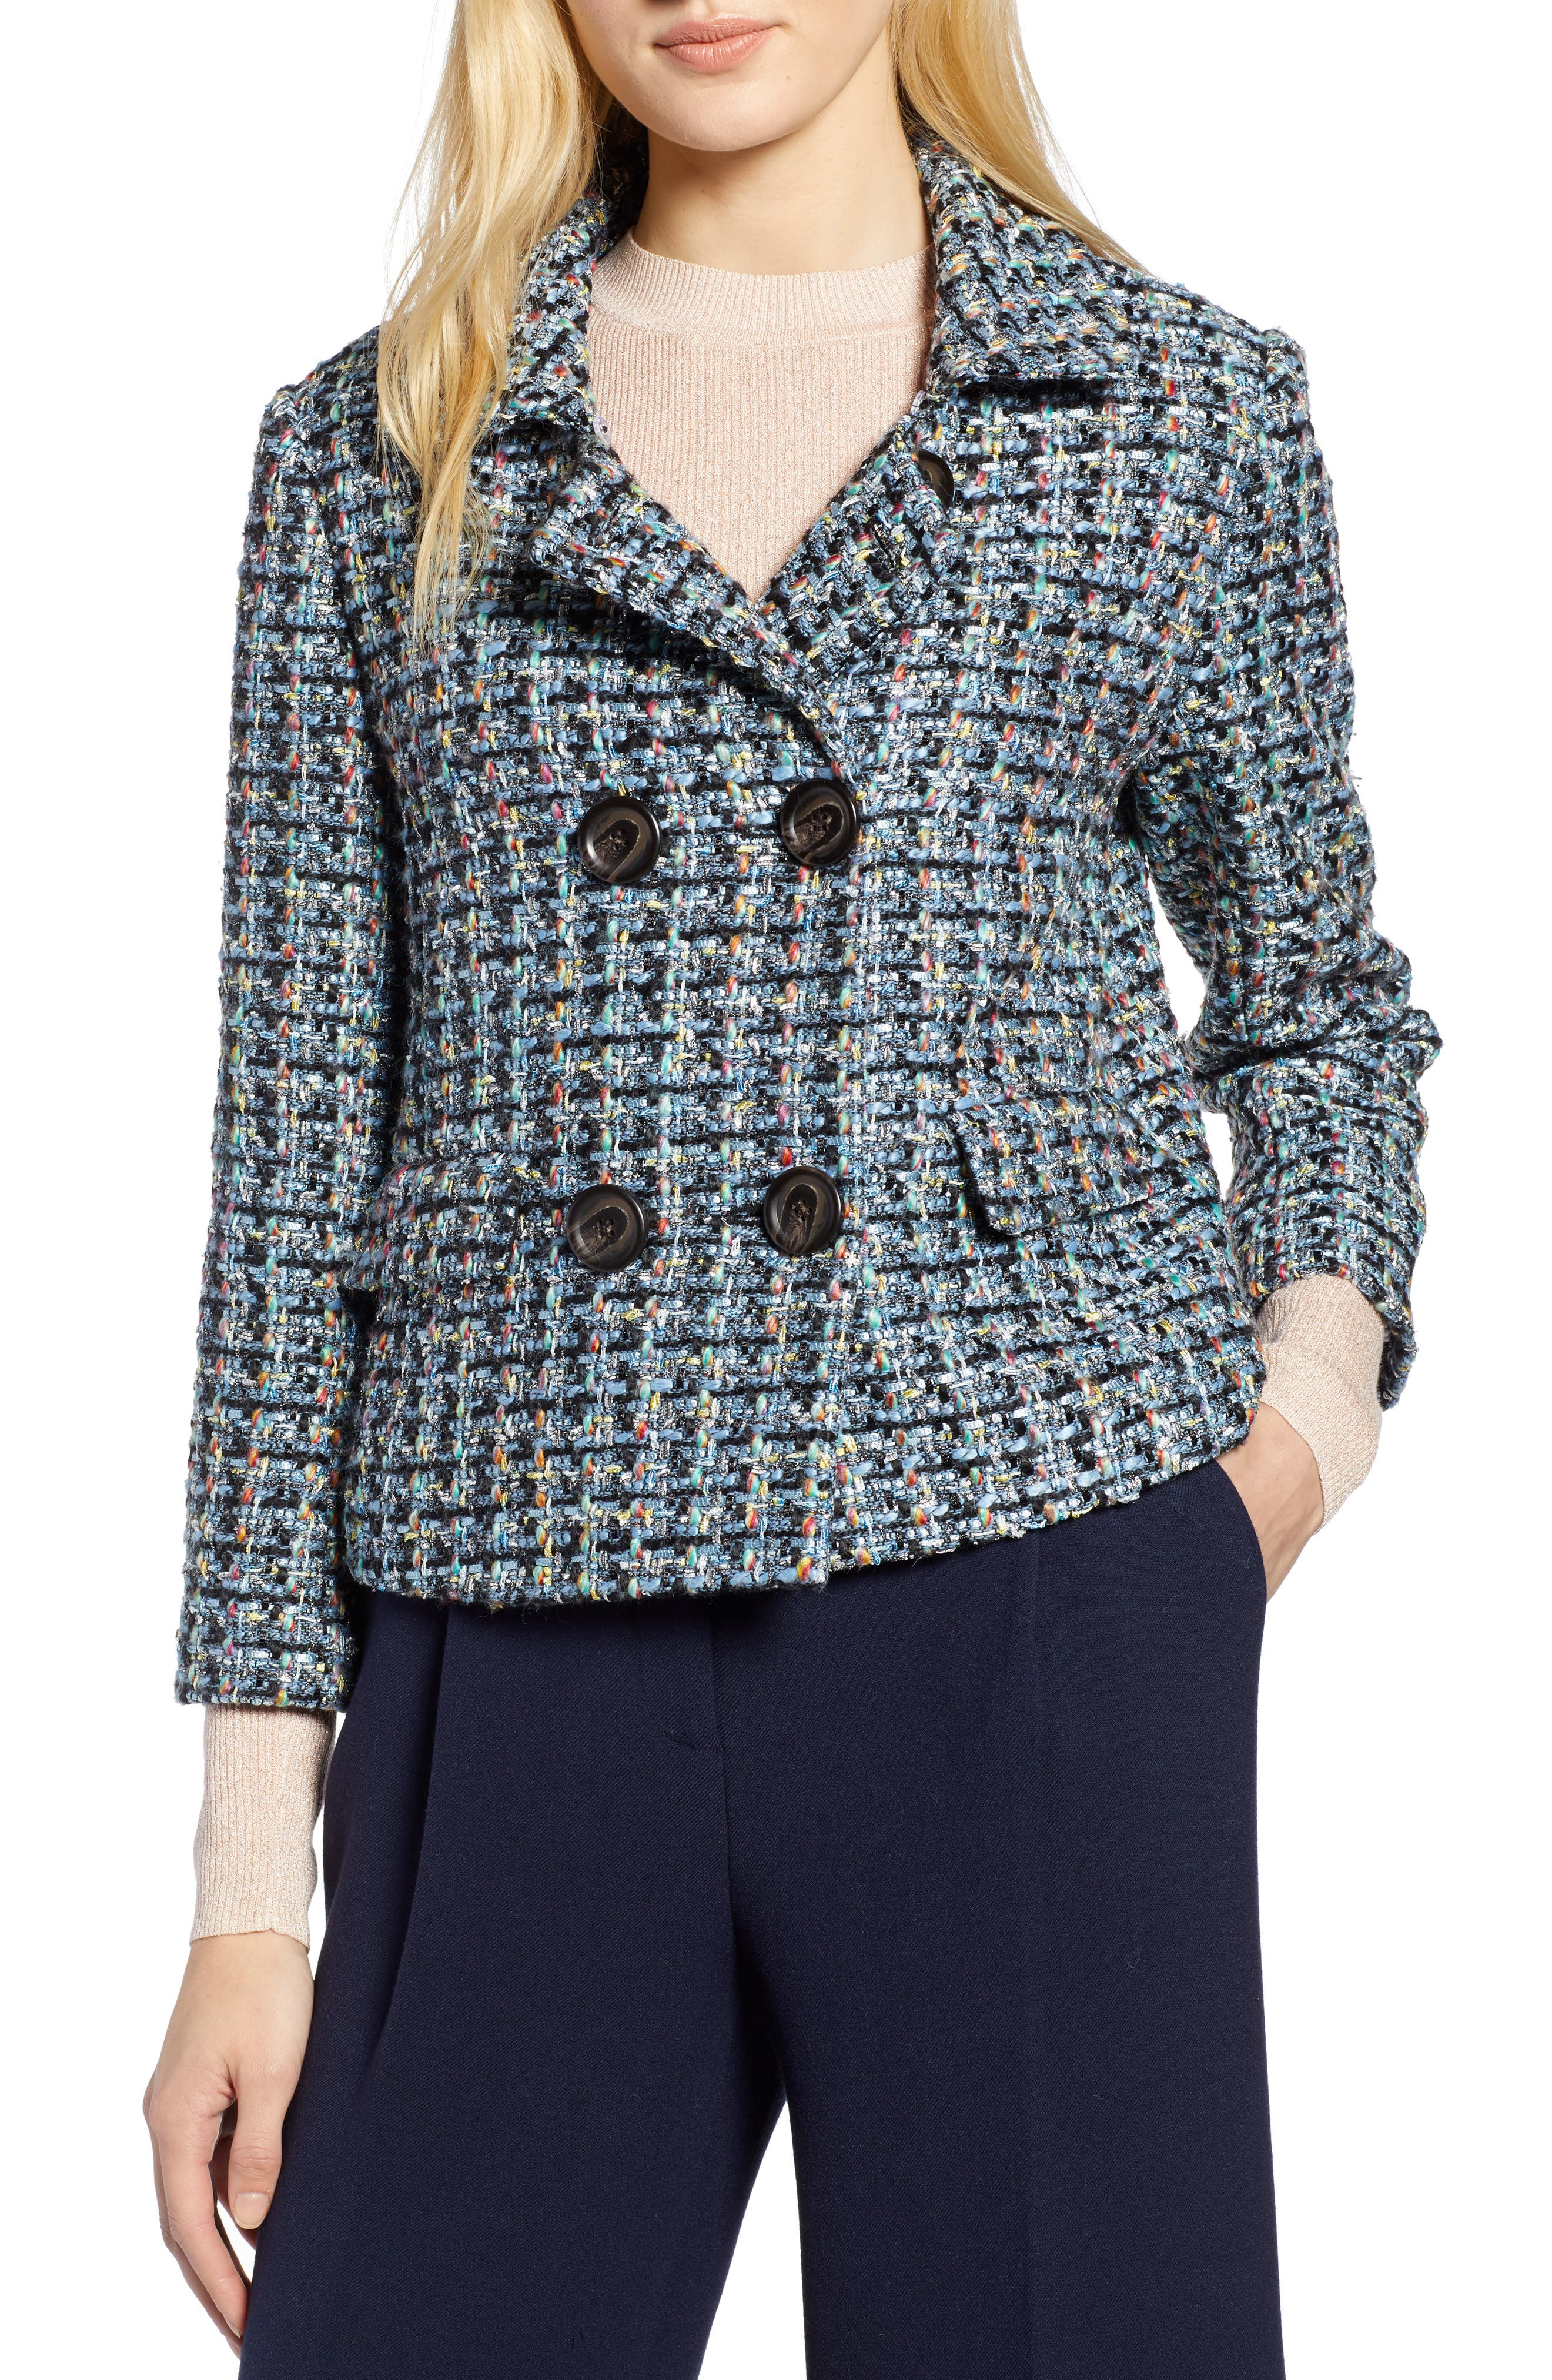 x Atlantic-Pacific Tweed Jacket with Removable Faux Fur Trim,                             Alternate thumbnail 6, color,                             BLACK MULTI TWEED